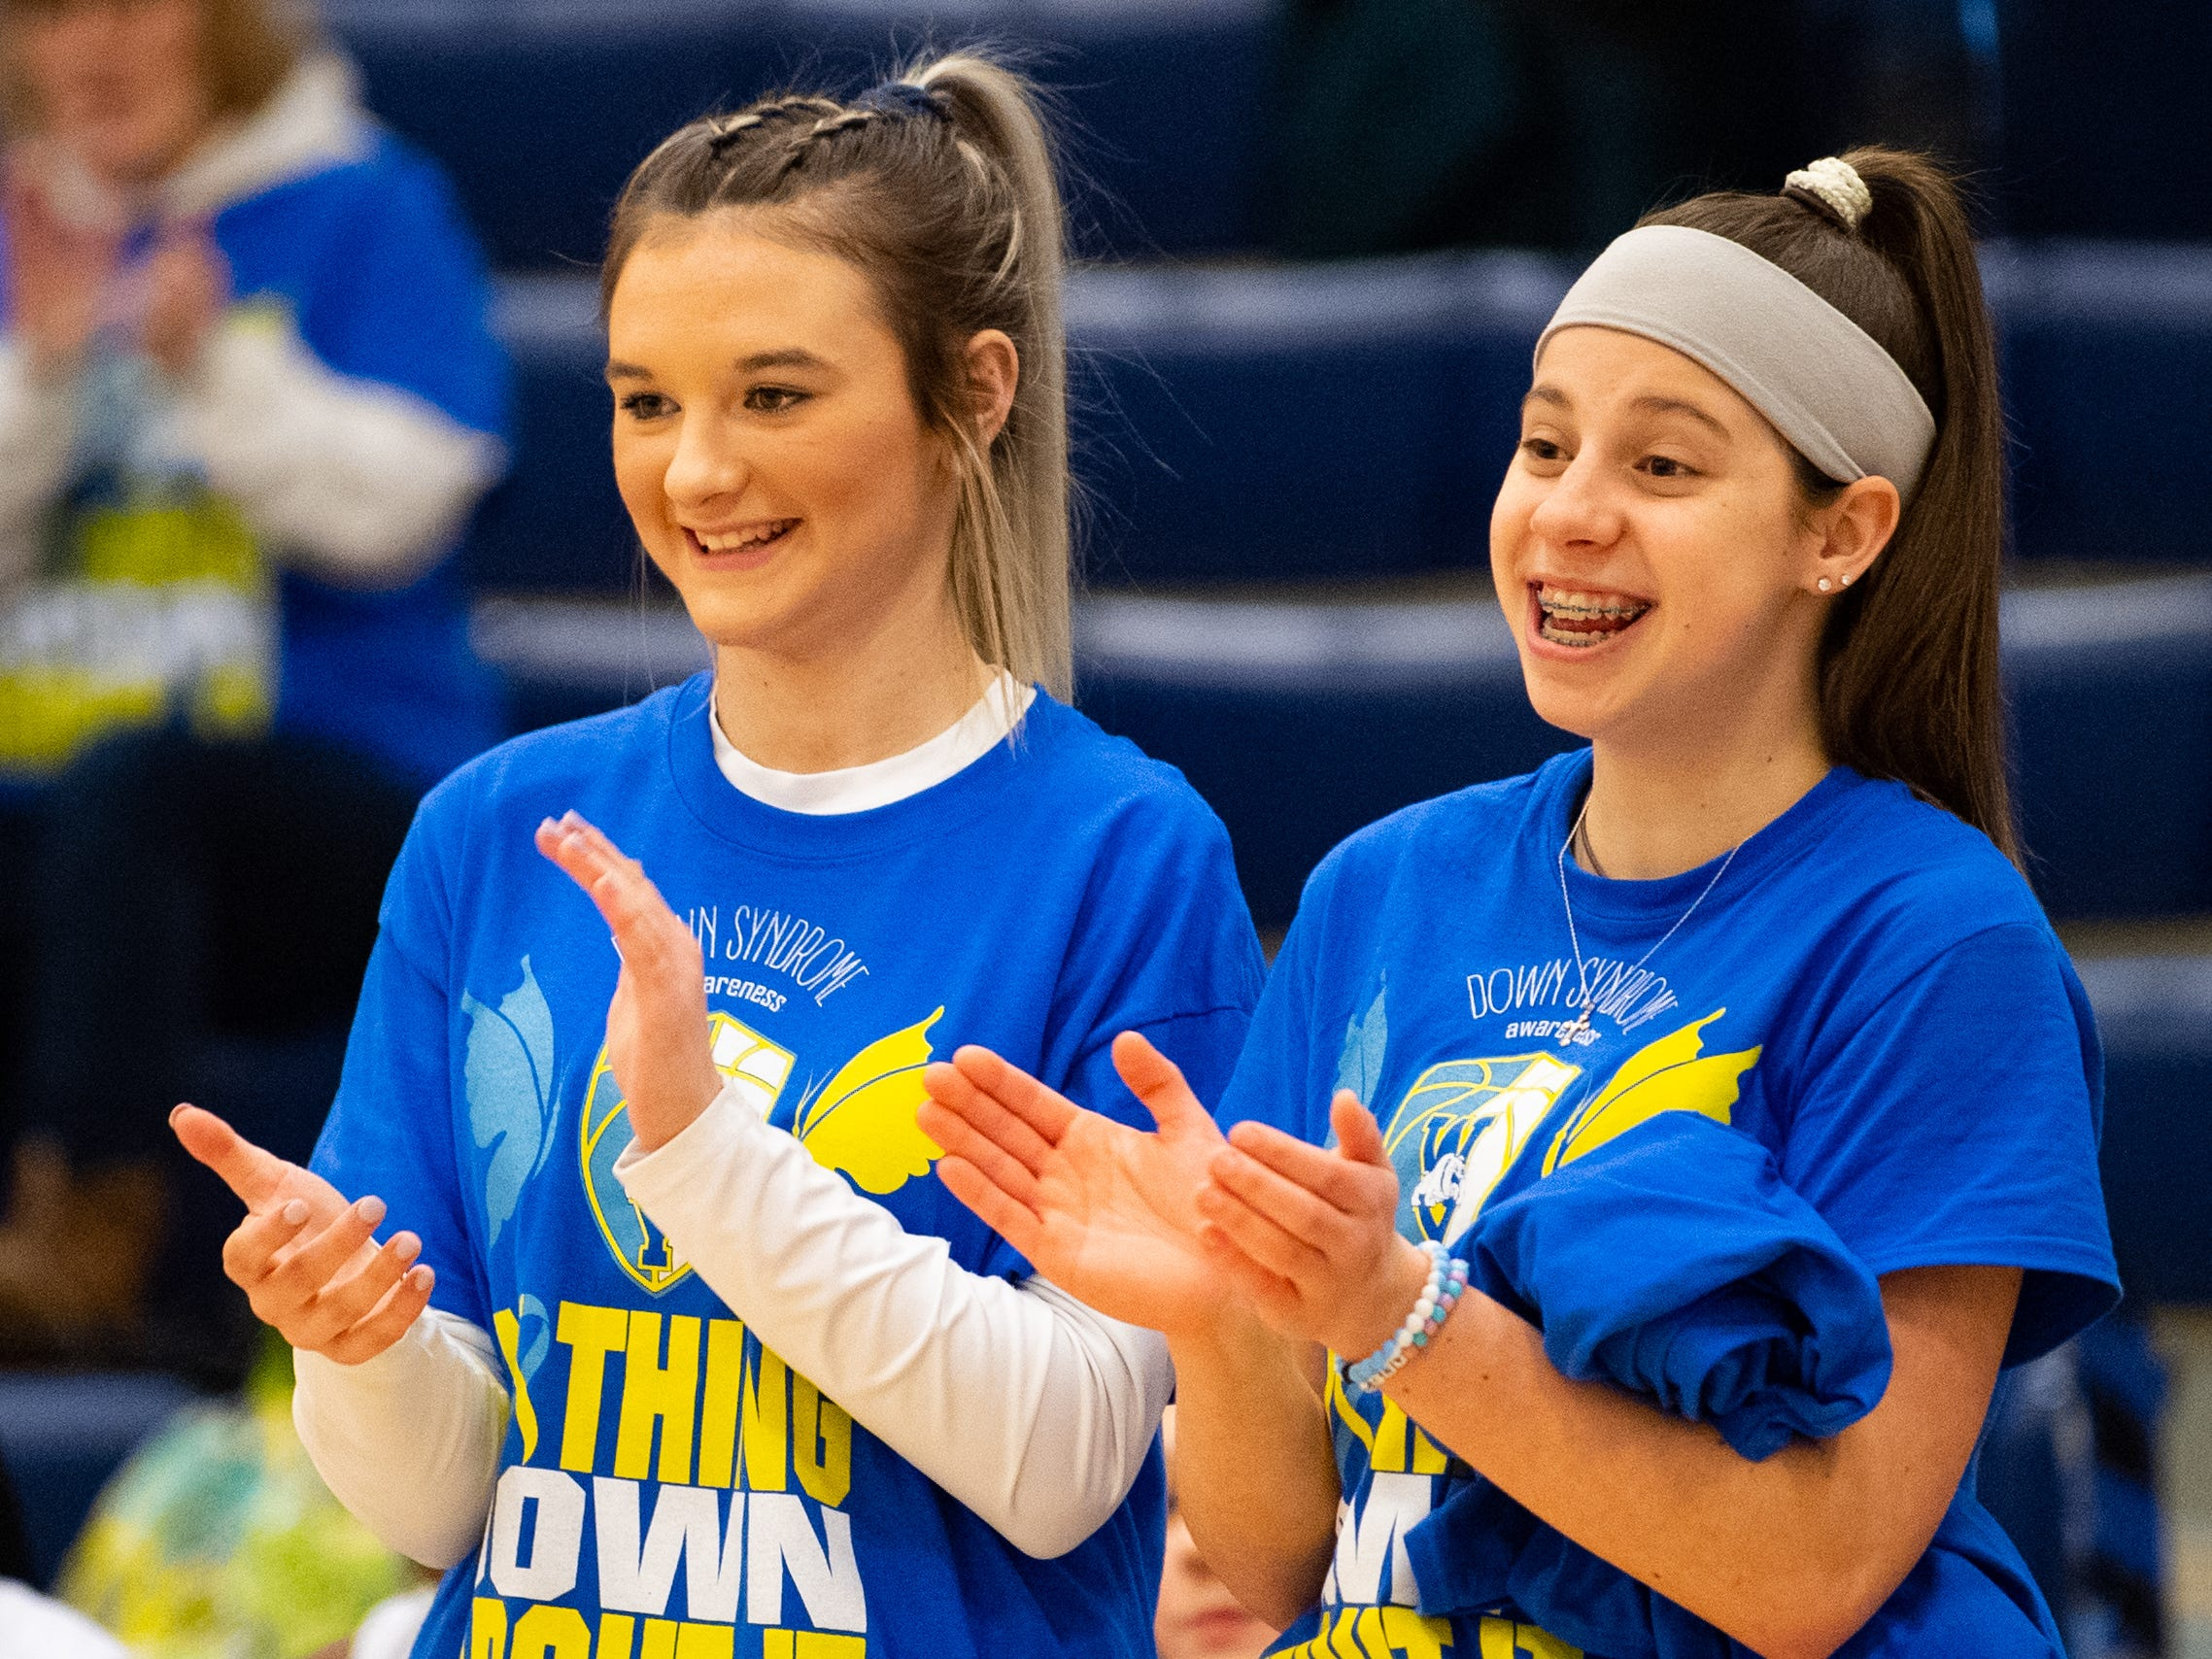 West York varsity players Makennah Hoffman (left) and Alainna Hopta (right) cheer on Katie Kniery while wearing special shirts dedicated to her, February 1, 2019.